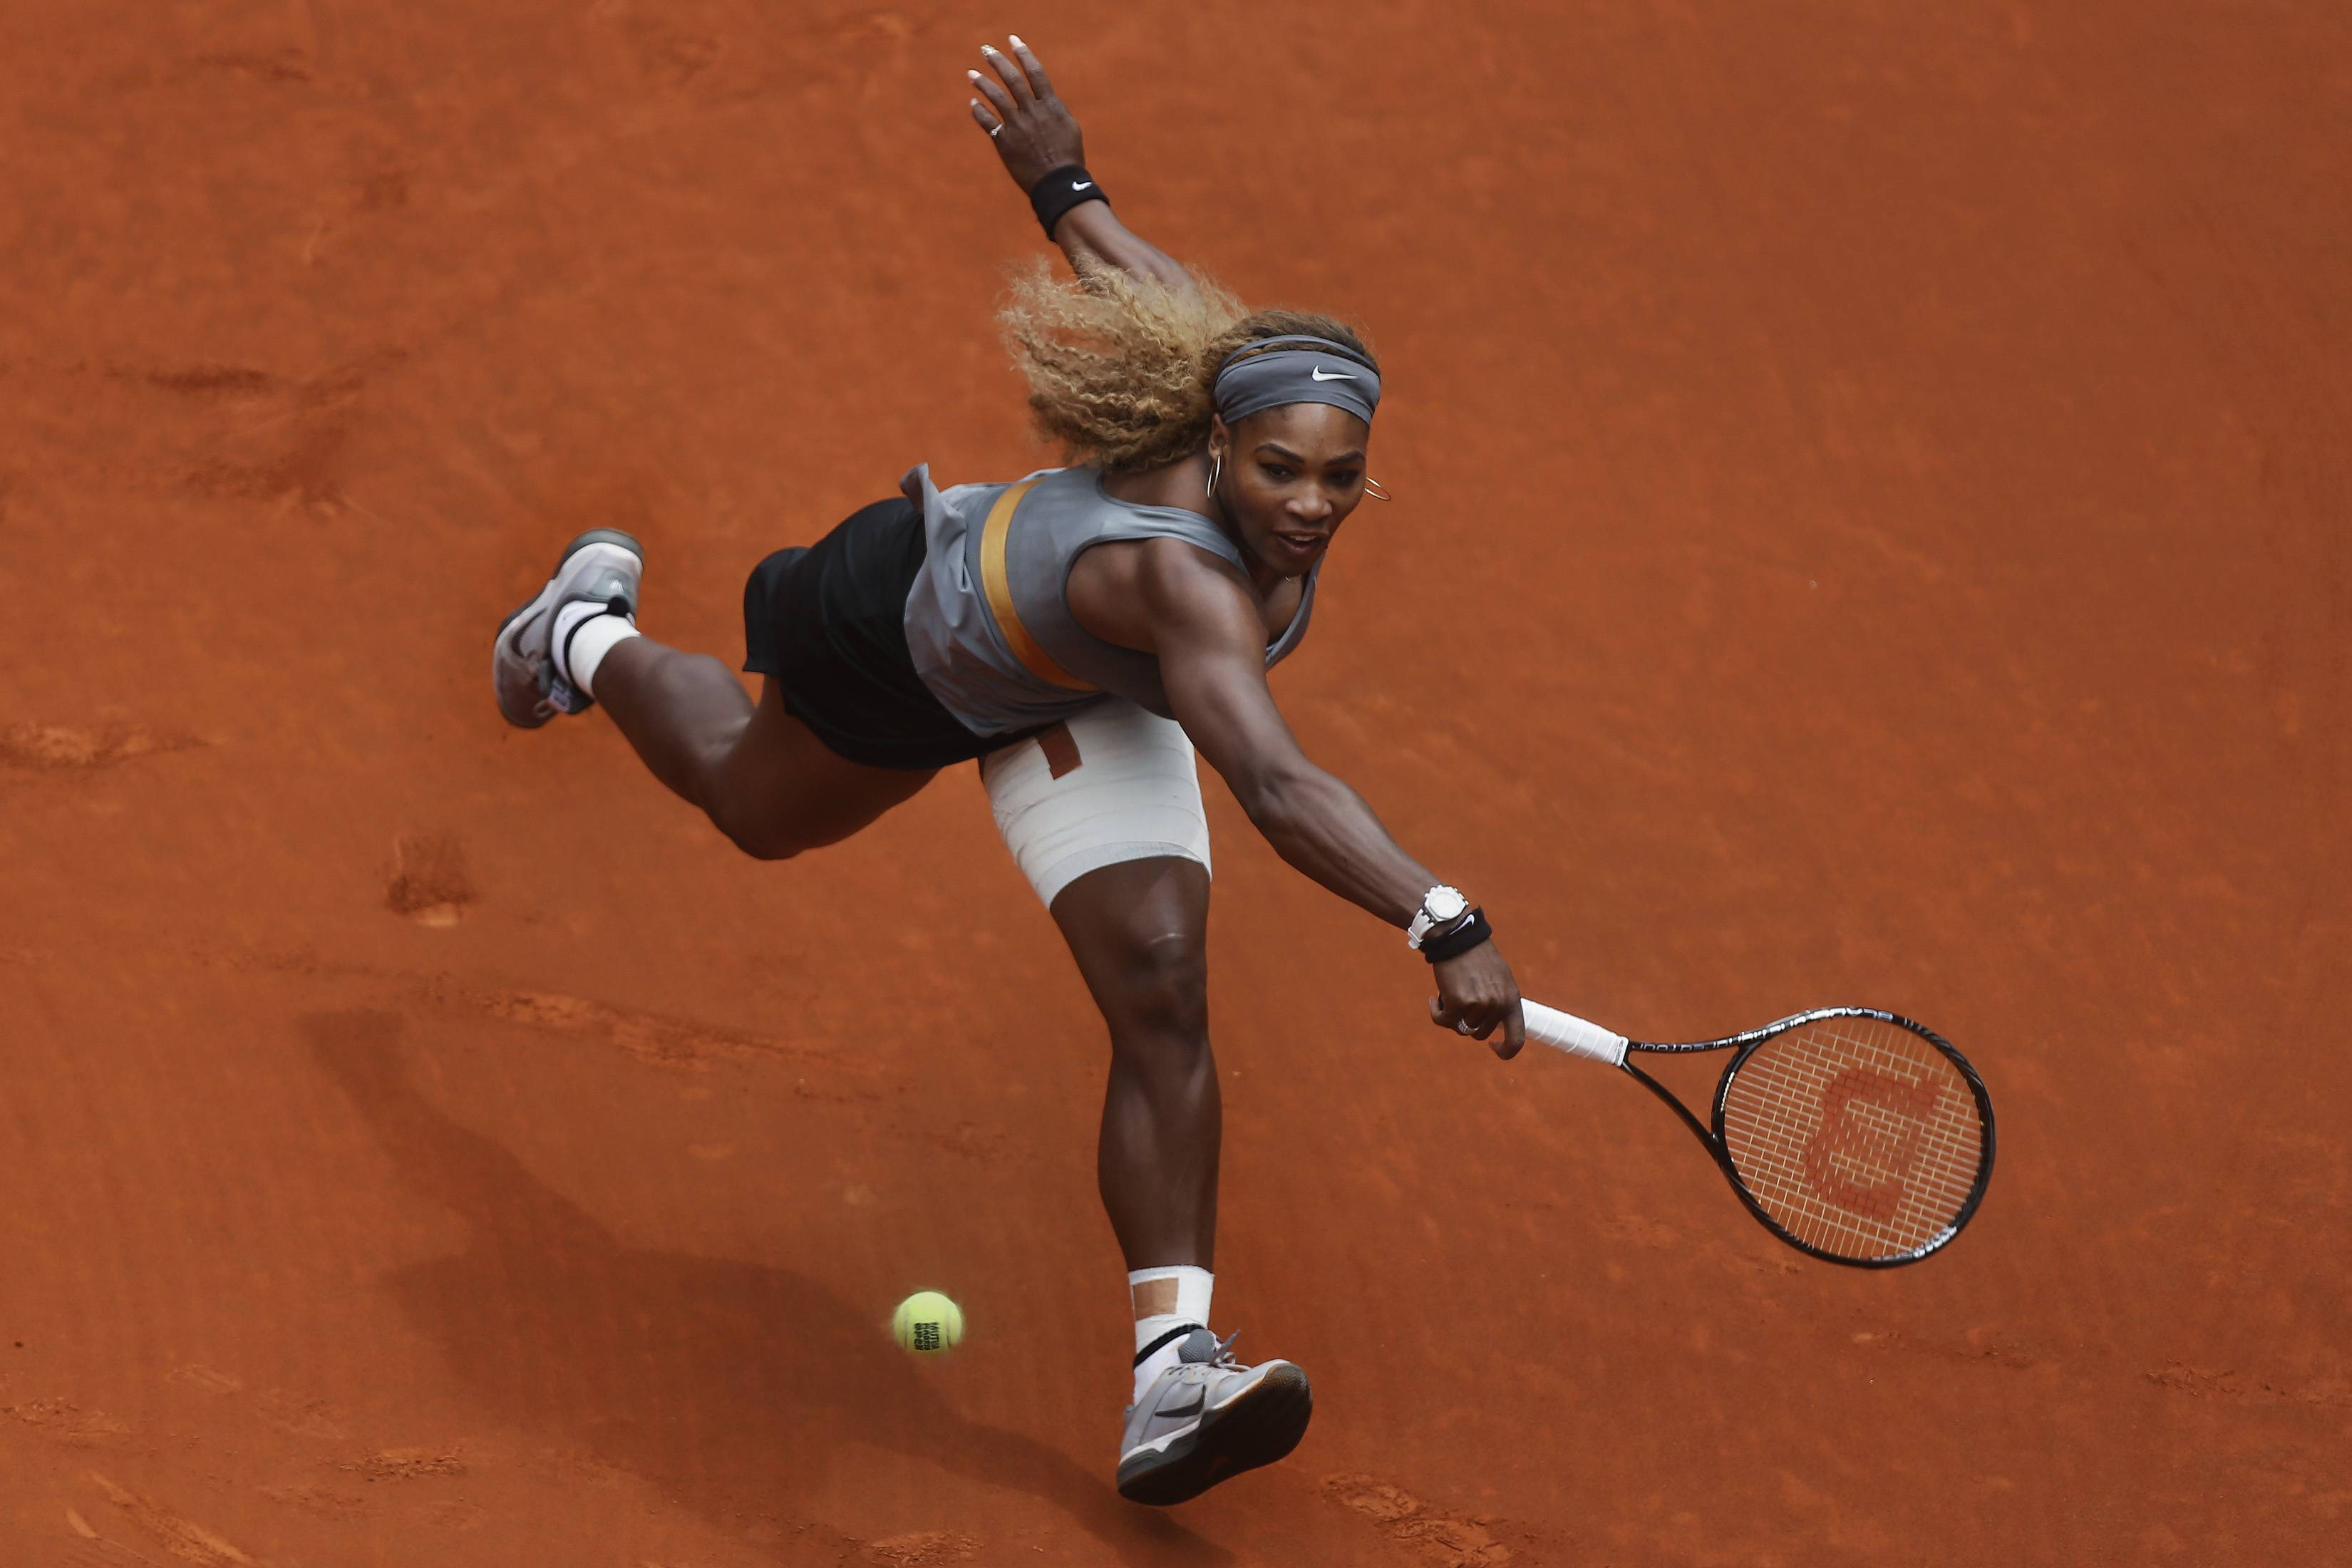 Serena Williams from US returns the ball during a Madrid Open tennis tournament match against Shuai Peng from China, in Madrid, Spain, Wednesday, May 7, 2014.